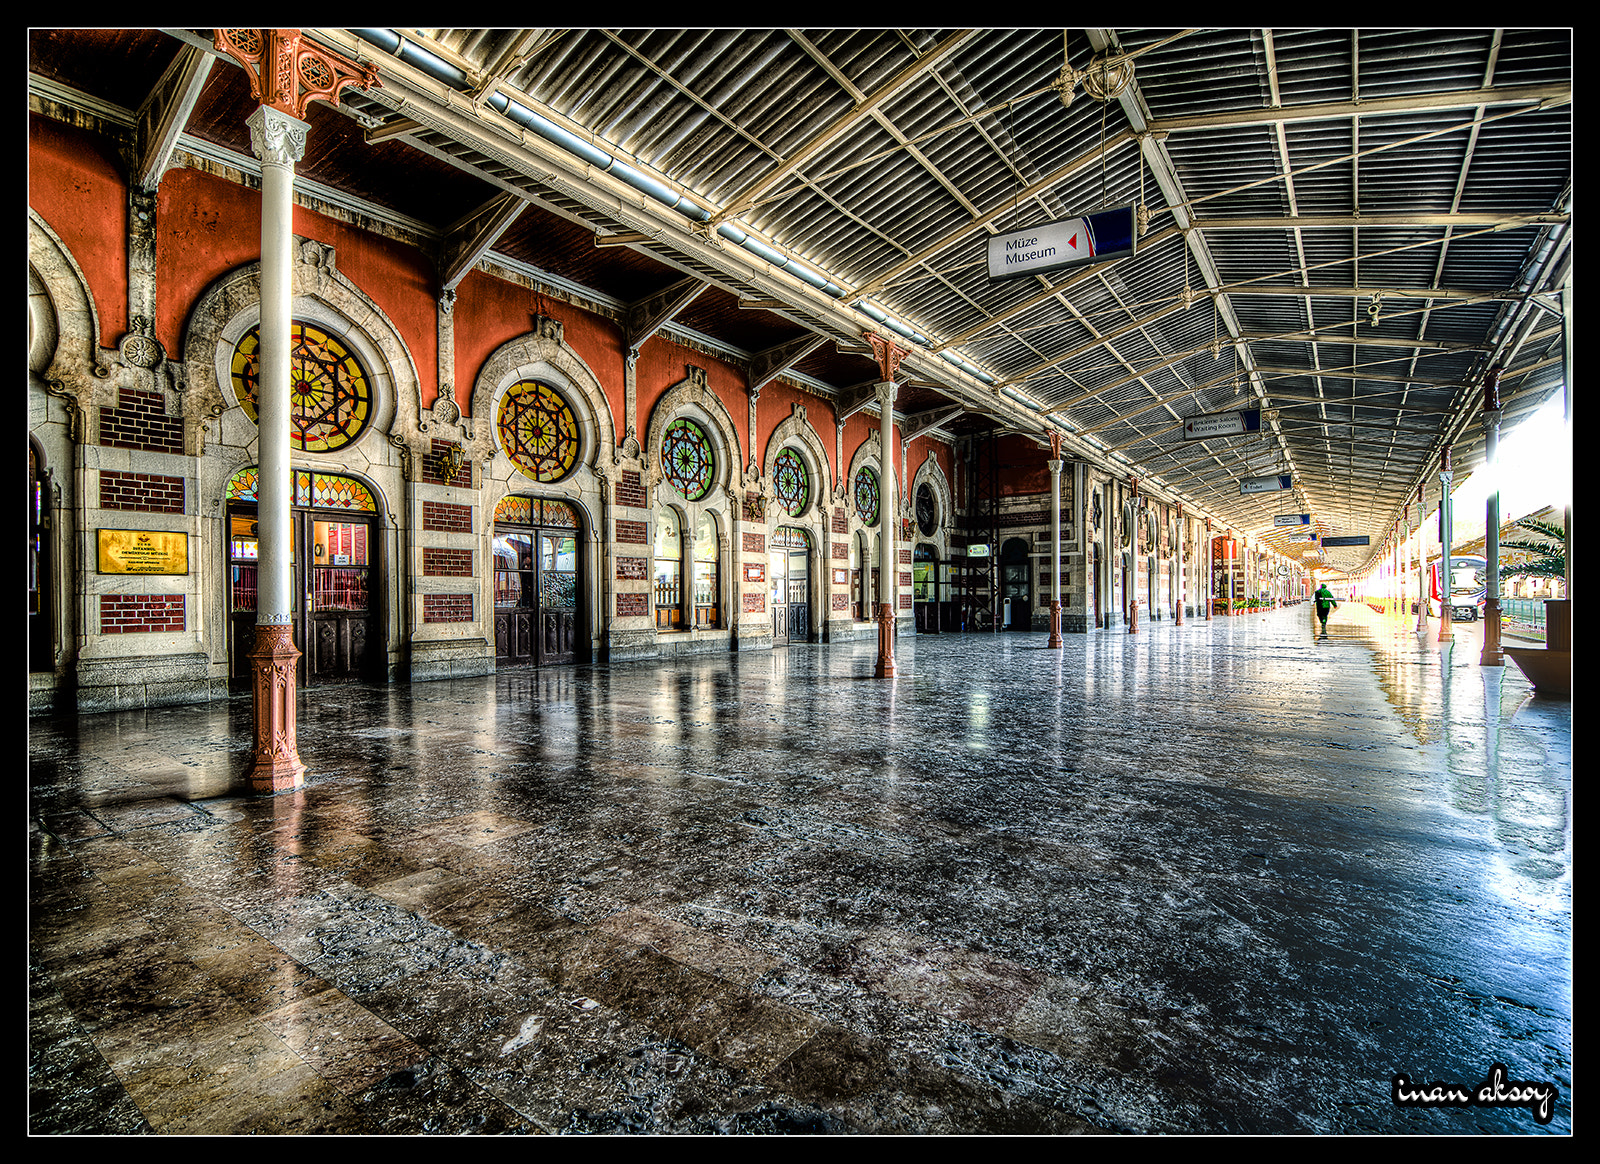 Photograph Sirkeci Train Station by Inan Aksoy on 500px